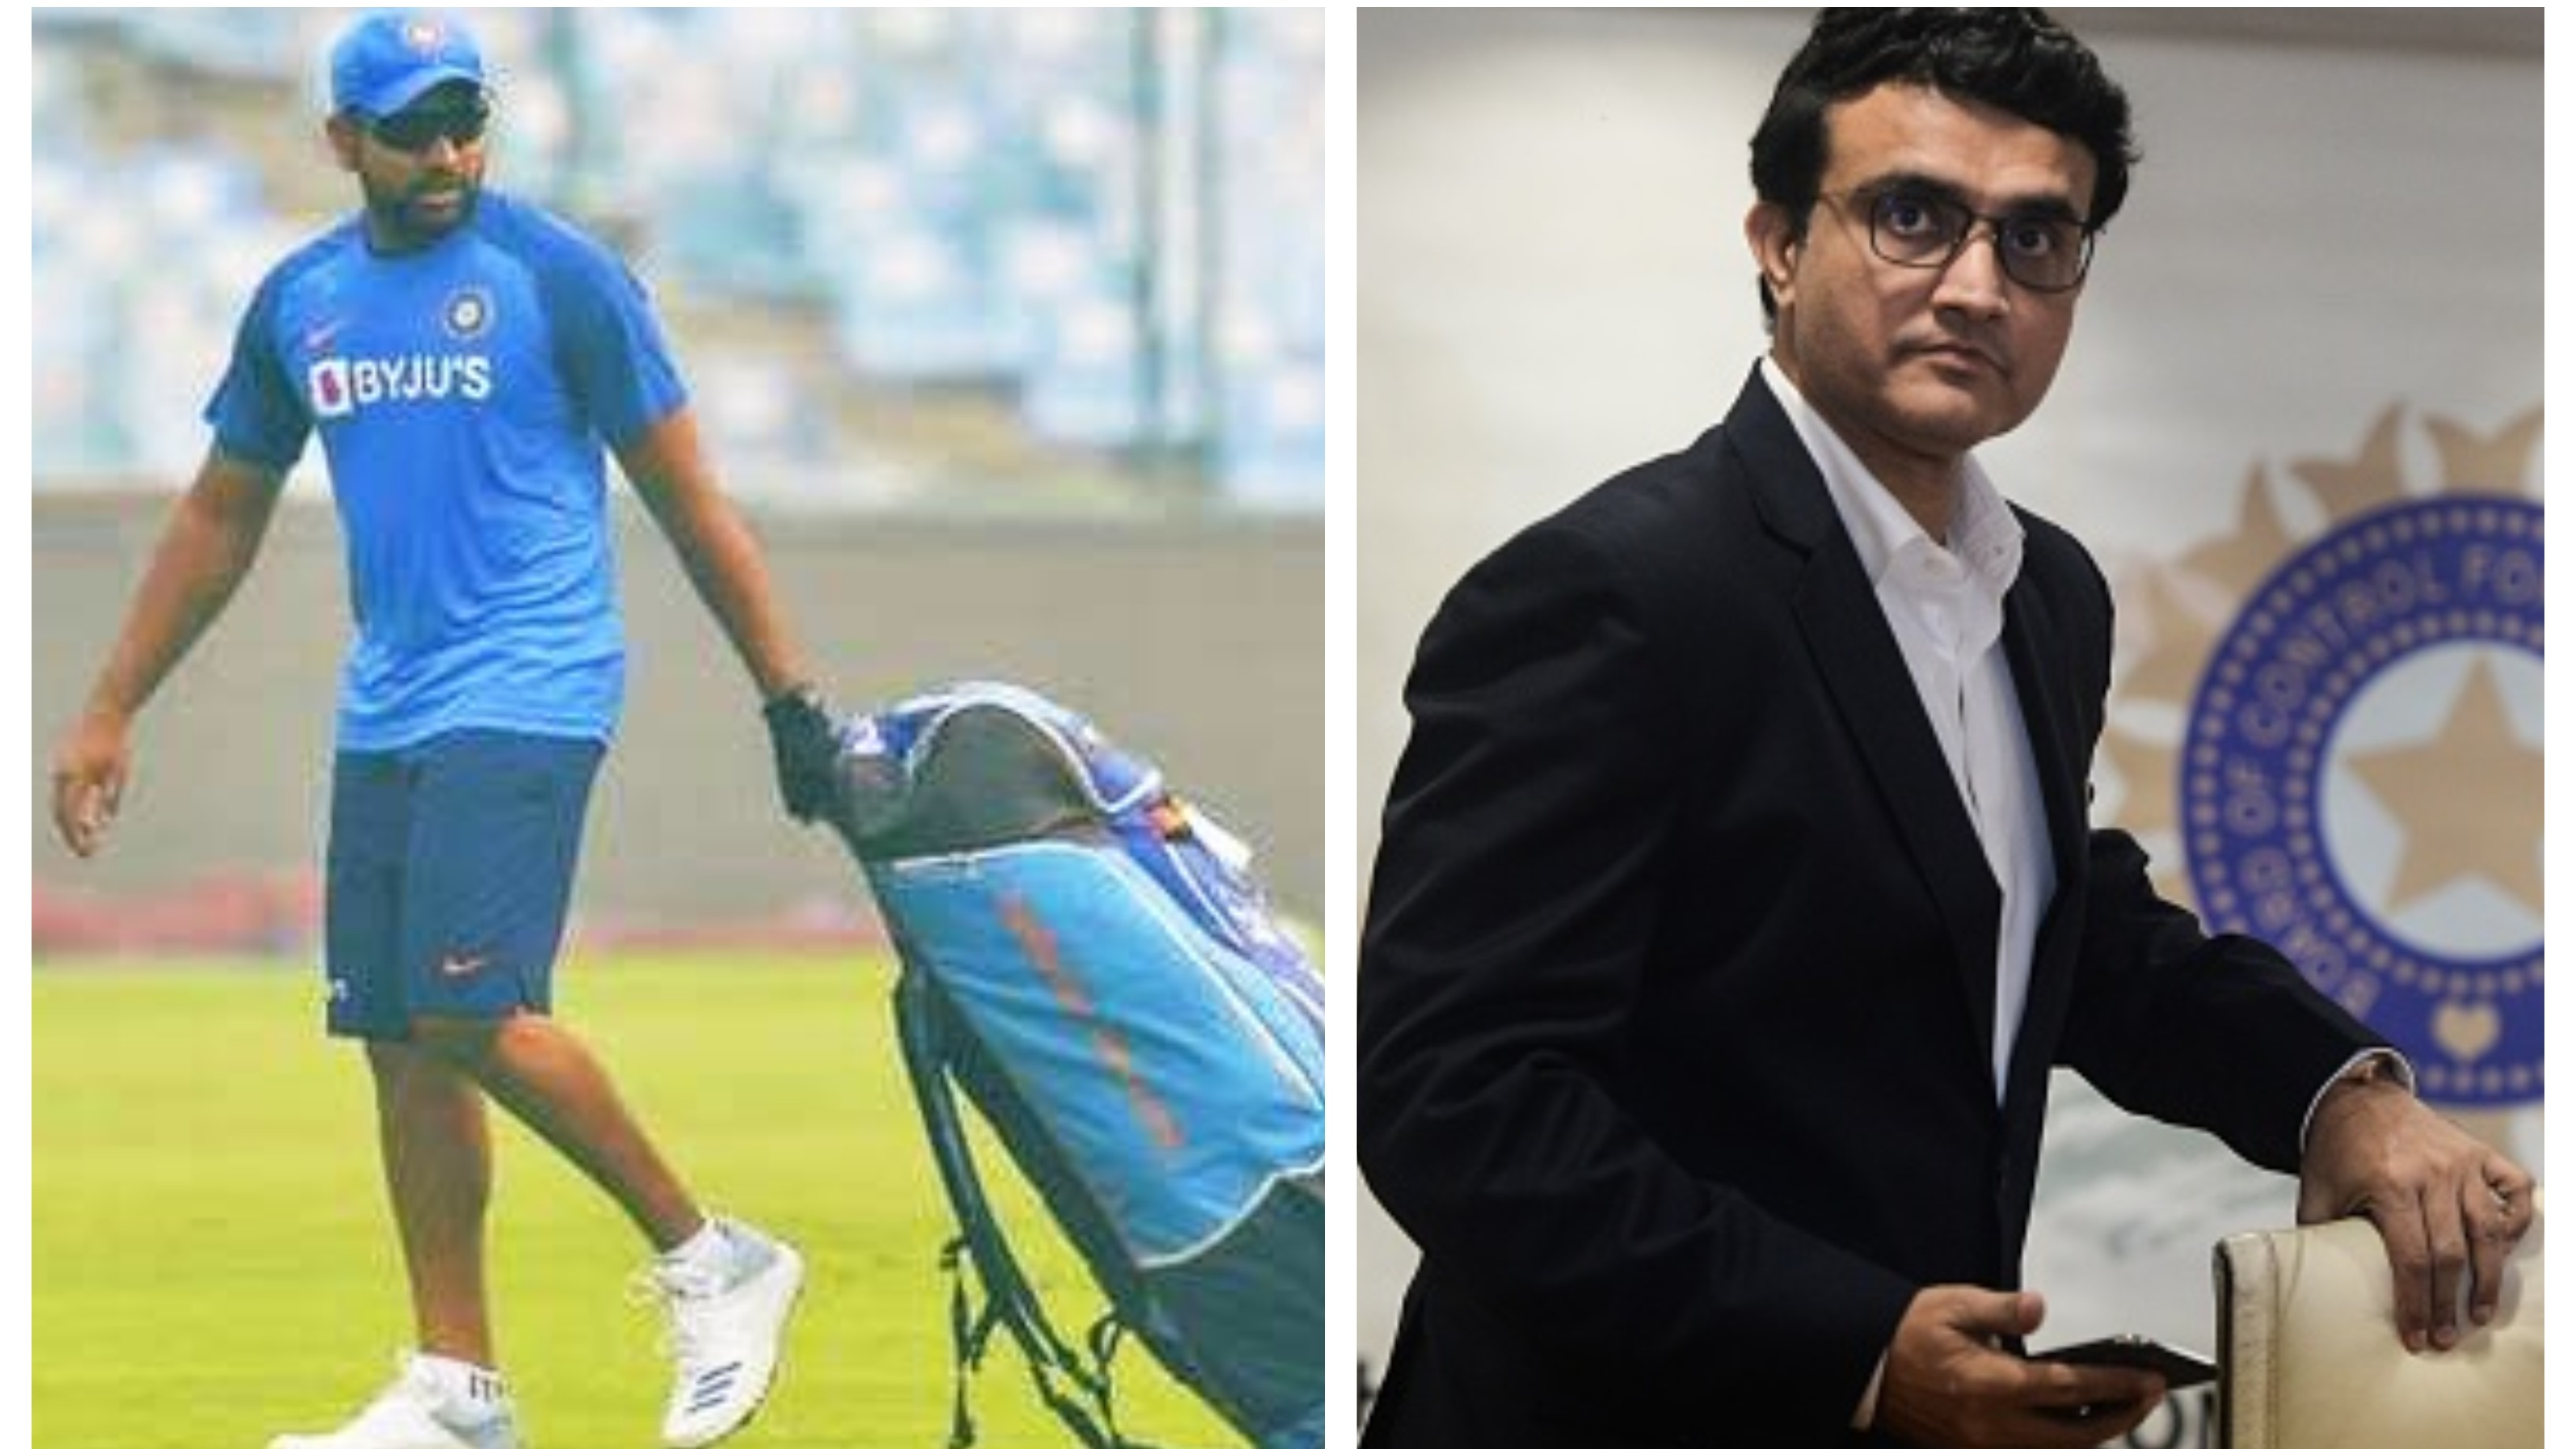 IND v BAN 2019: India ready to play Delhi T20I despite severe pollution, Rohit assures BCCI boss Ganguly